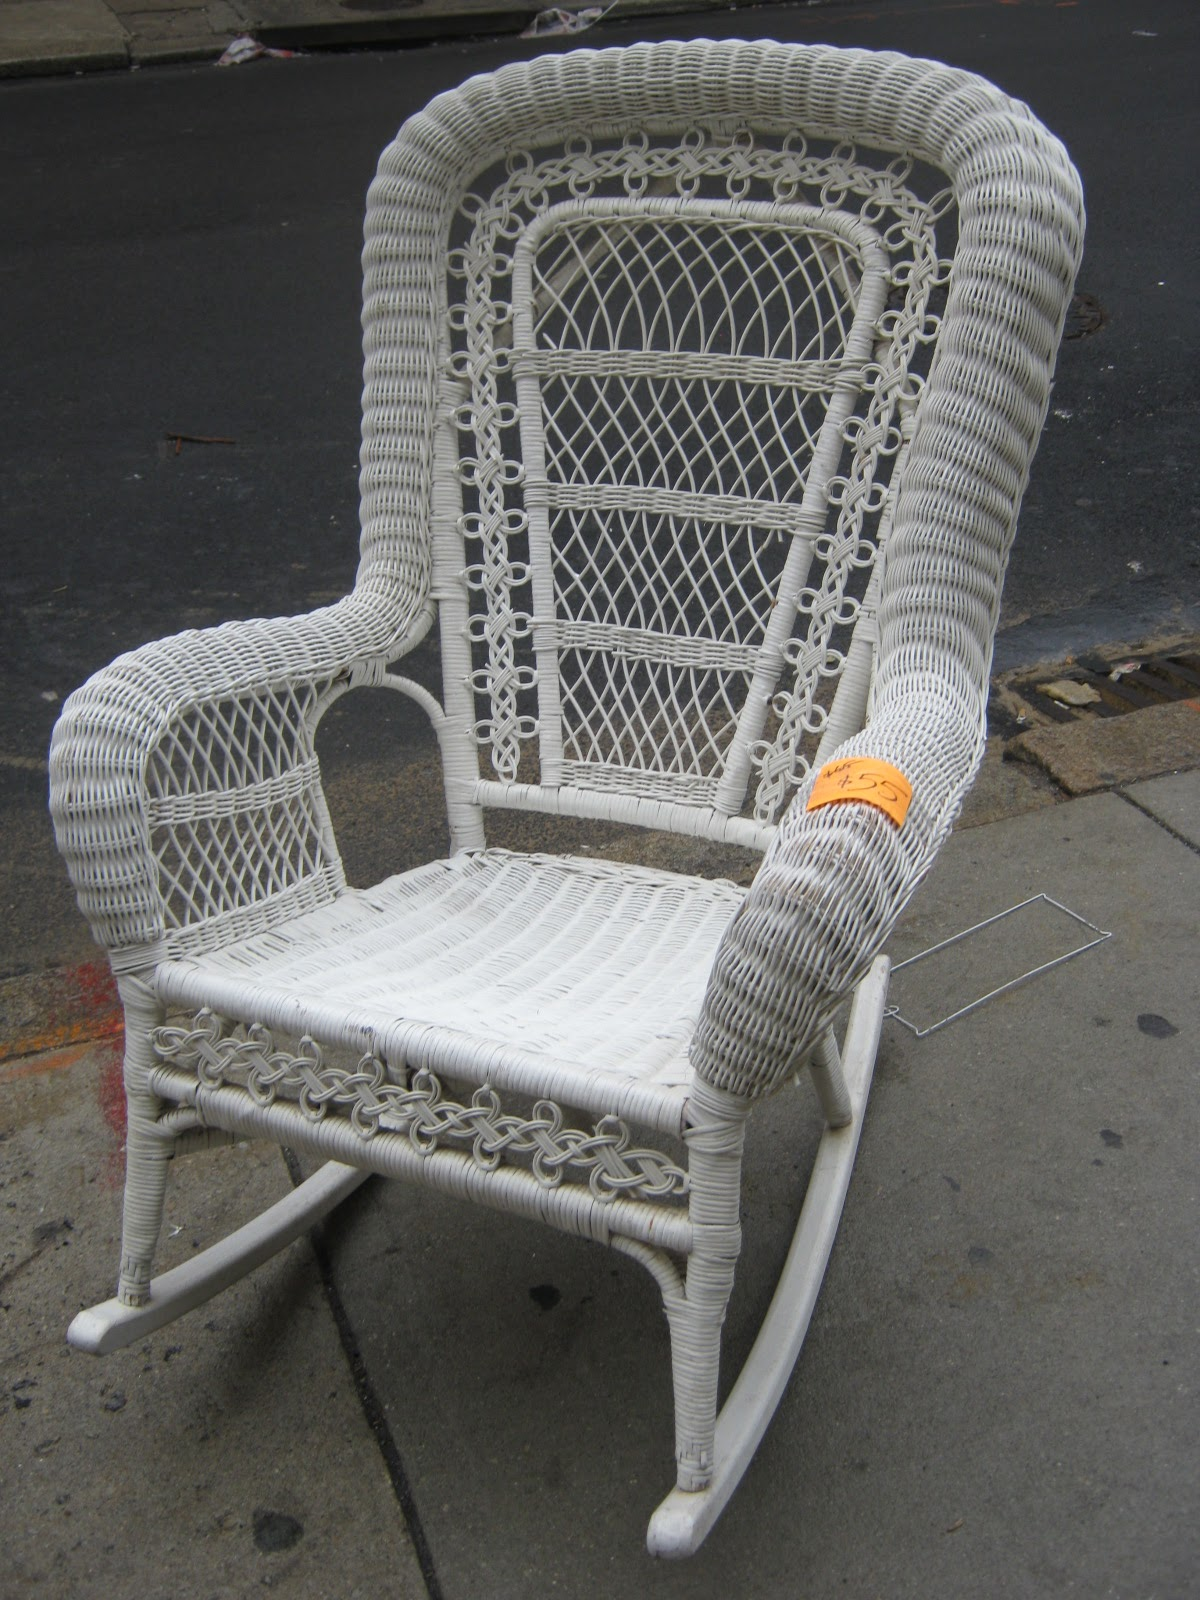 White Wicker Rocking Chair Uhuru Furniture And Collectibles White Wicker Wonderland Sold